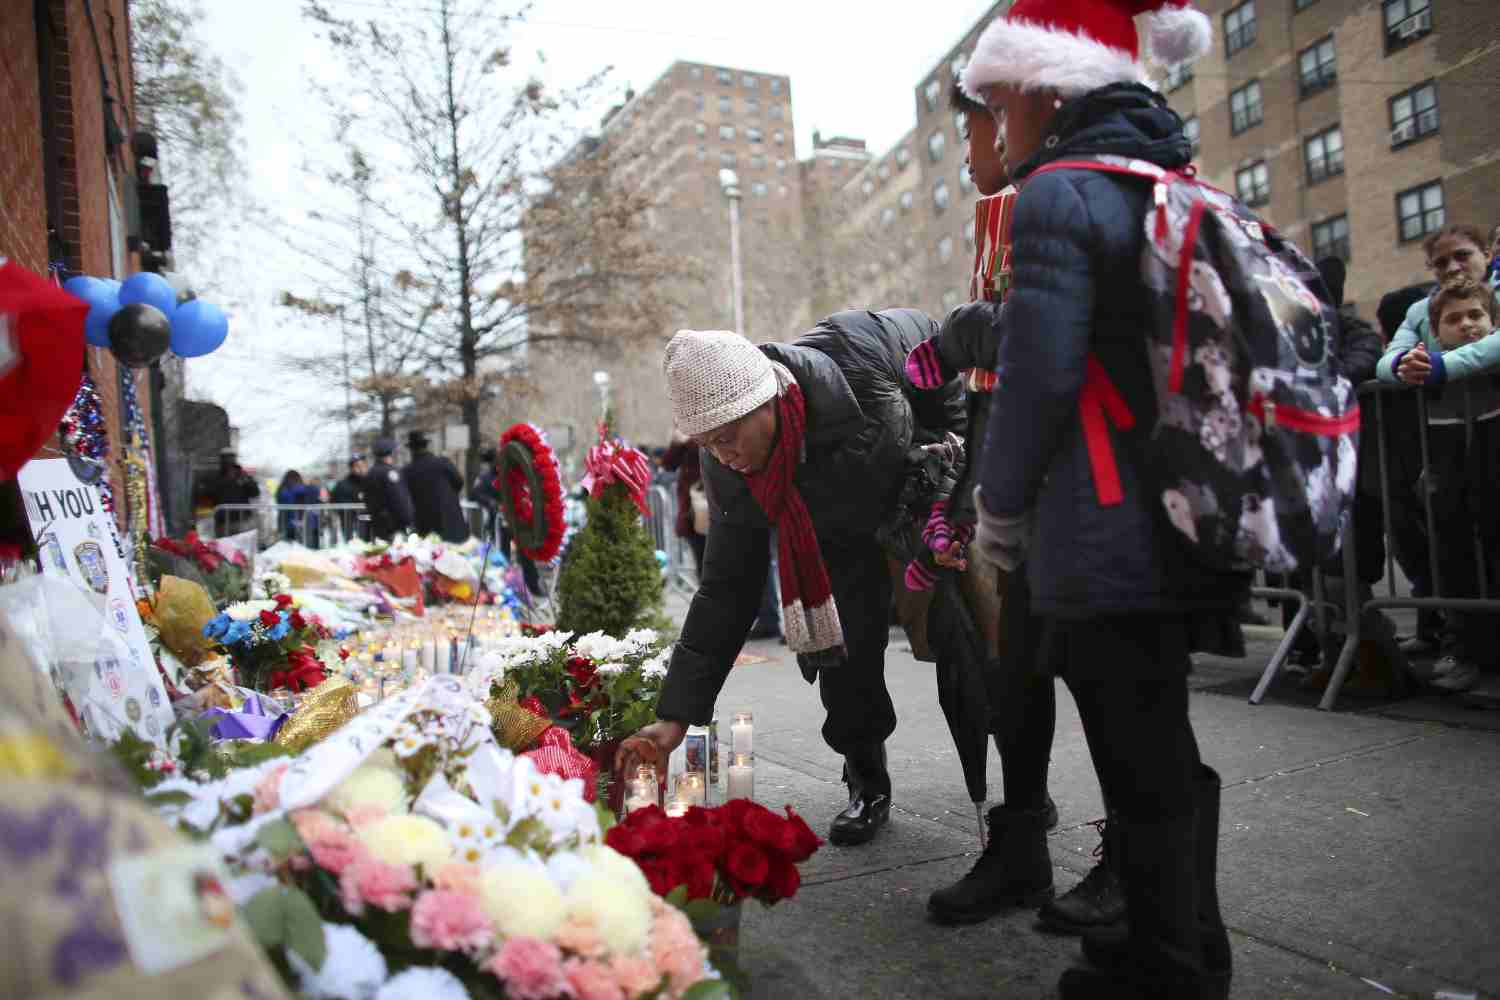 A family visits a makeshift memorial for two New York City police officers killed on Dec. 20. (New York Times Photo)